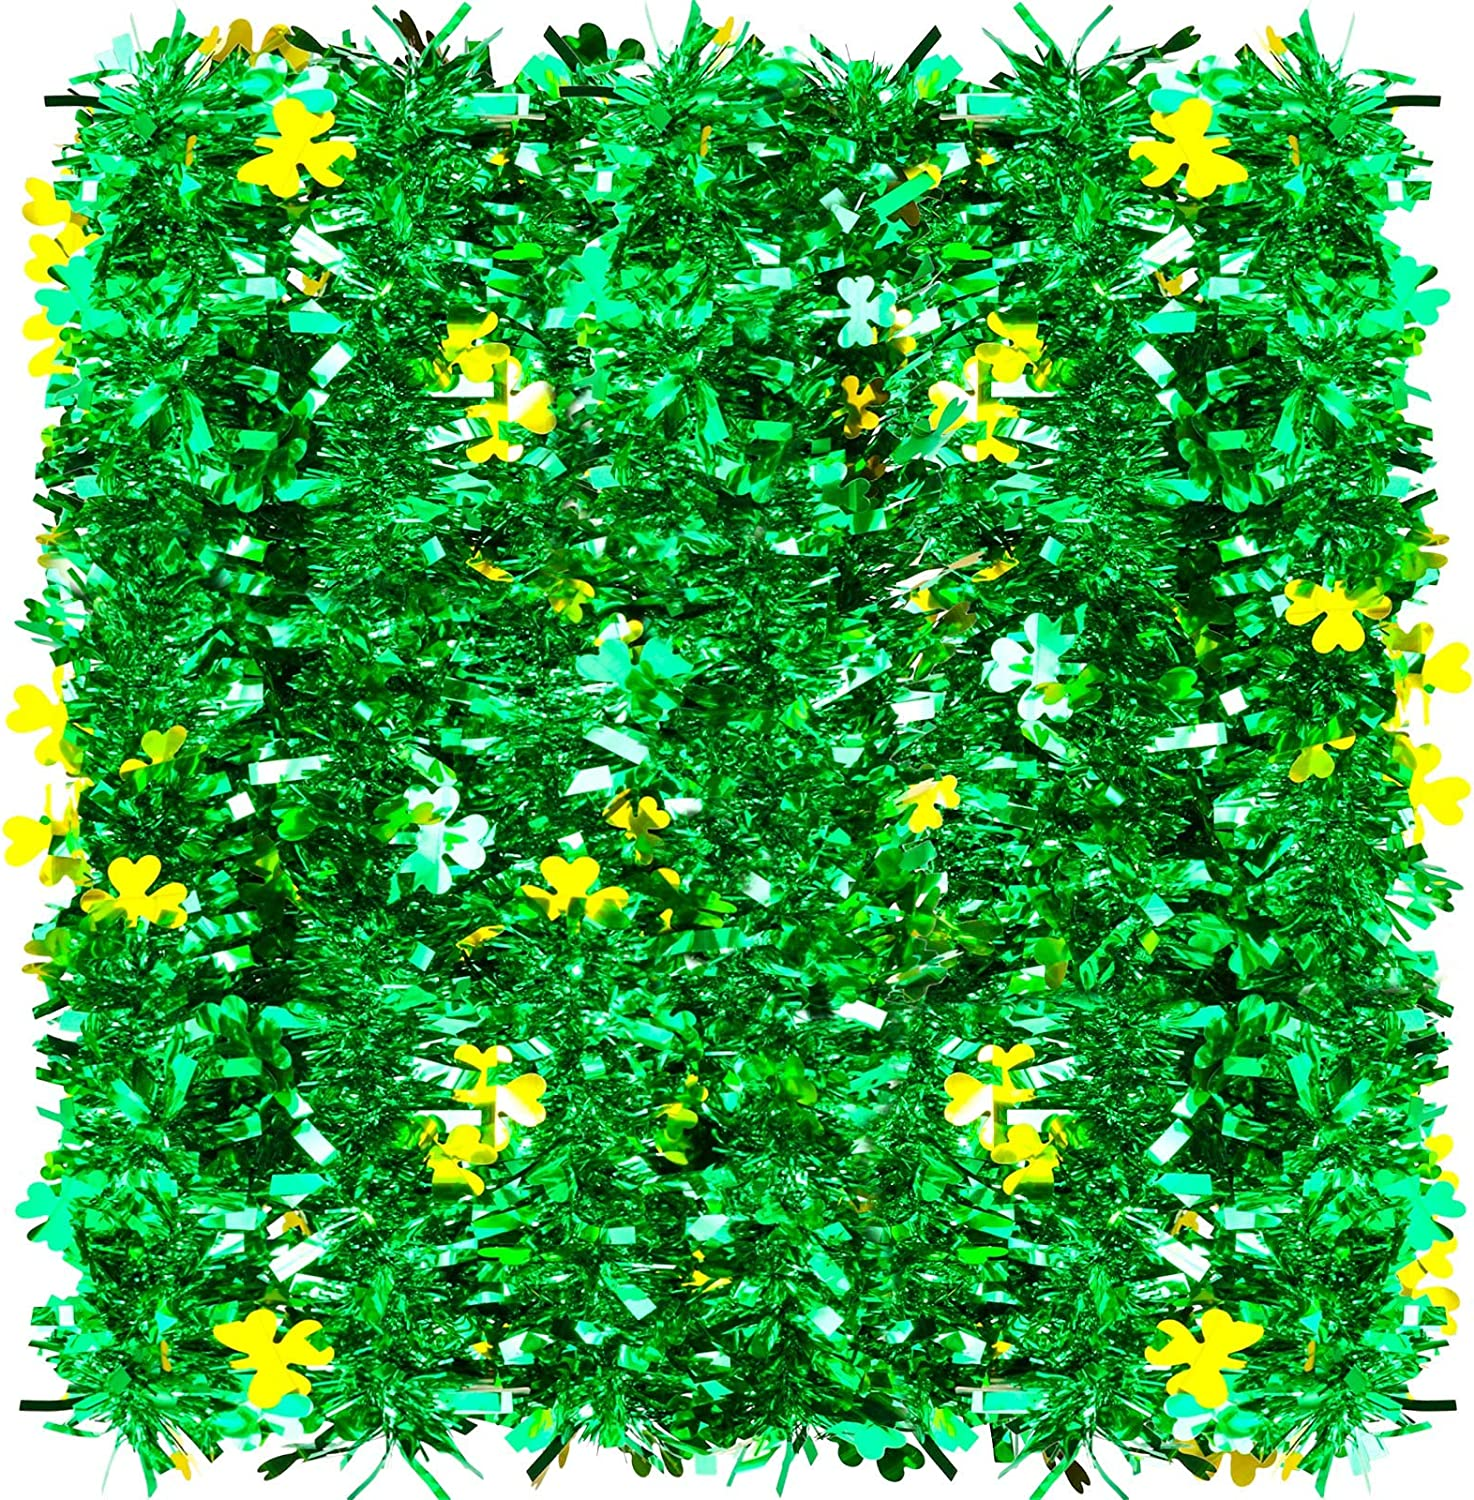 WILLBOND 26.2 Feet Shamrock Tinsel Metallic Garland St. Patrick's Day Tinsel Garland Green and Gold Shamrock Garland for Irish Party St. Patrick's Day Celebrations Indoor and Outdoor Decorations